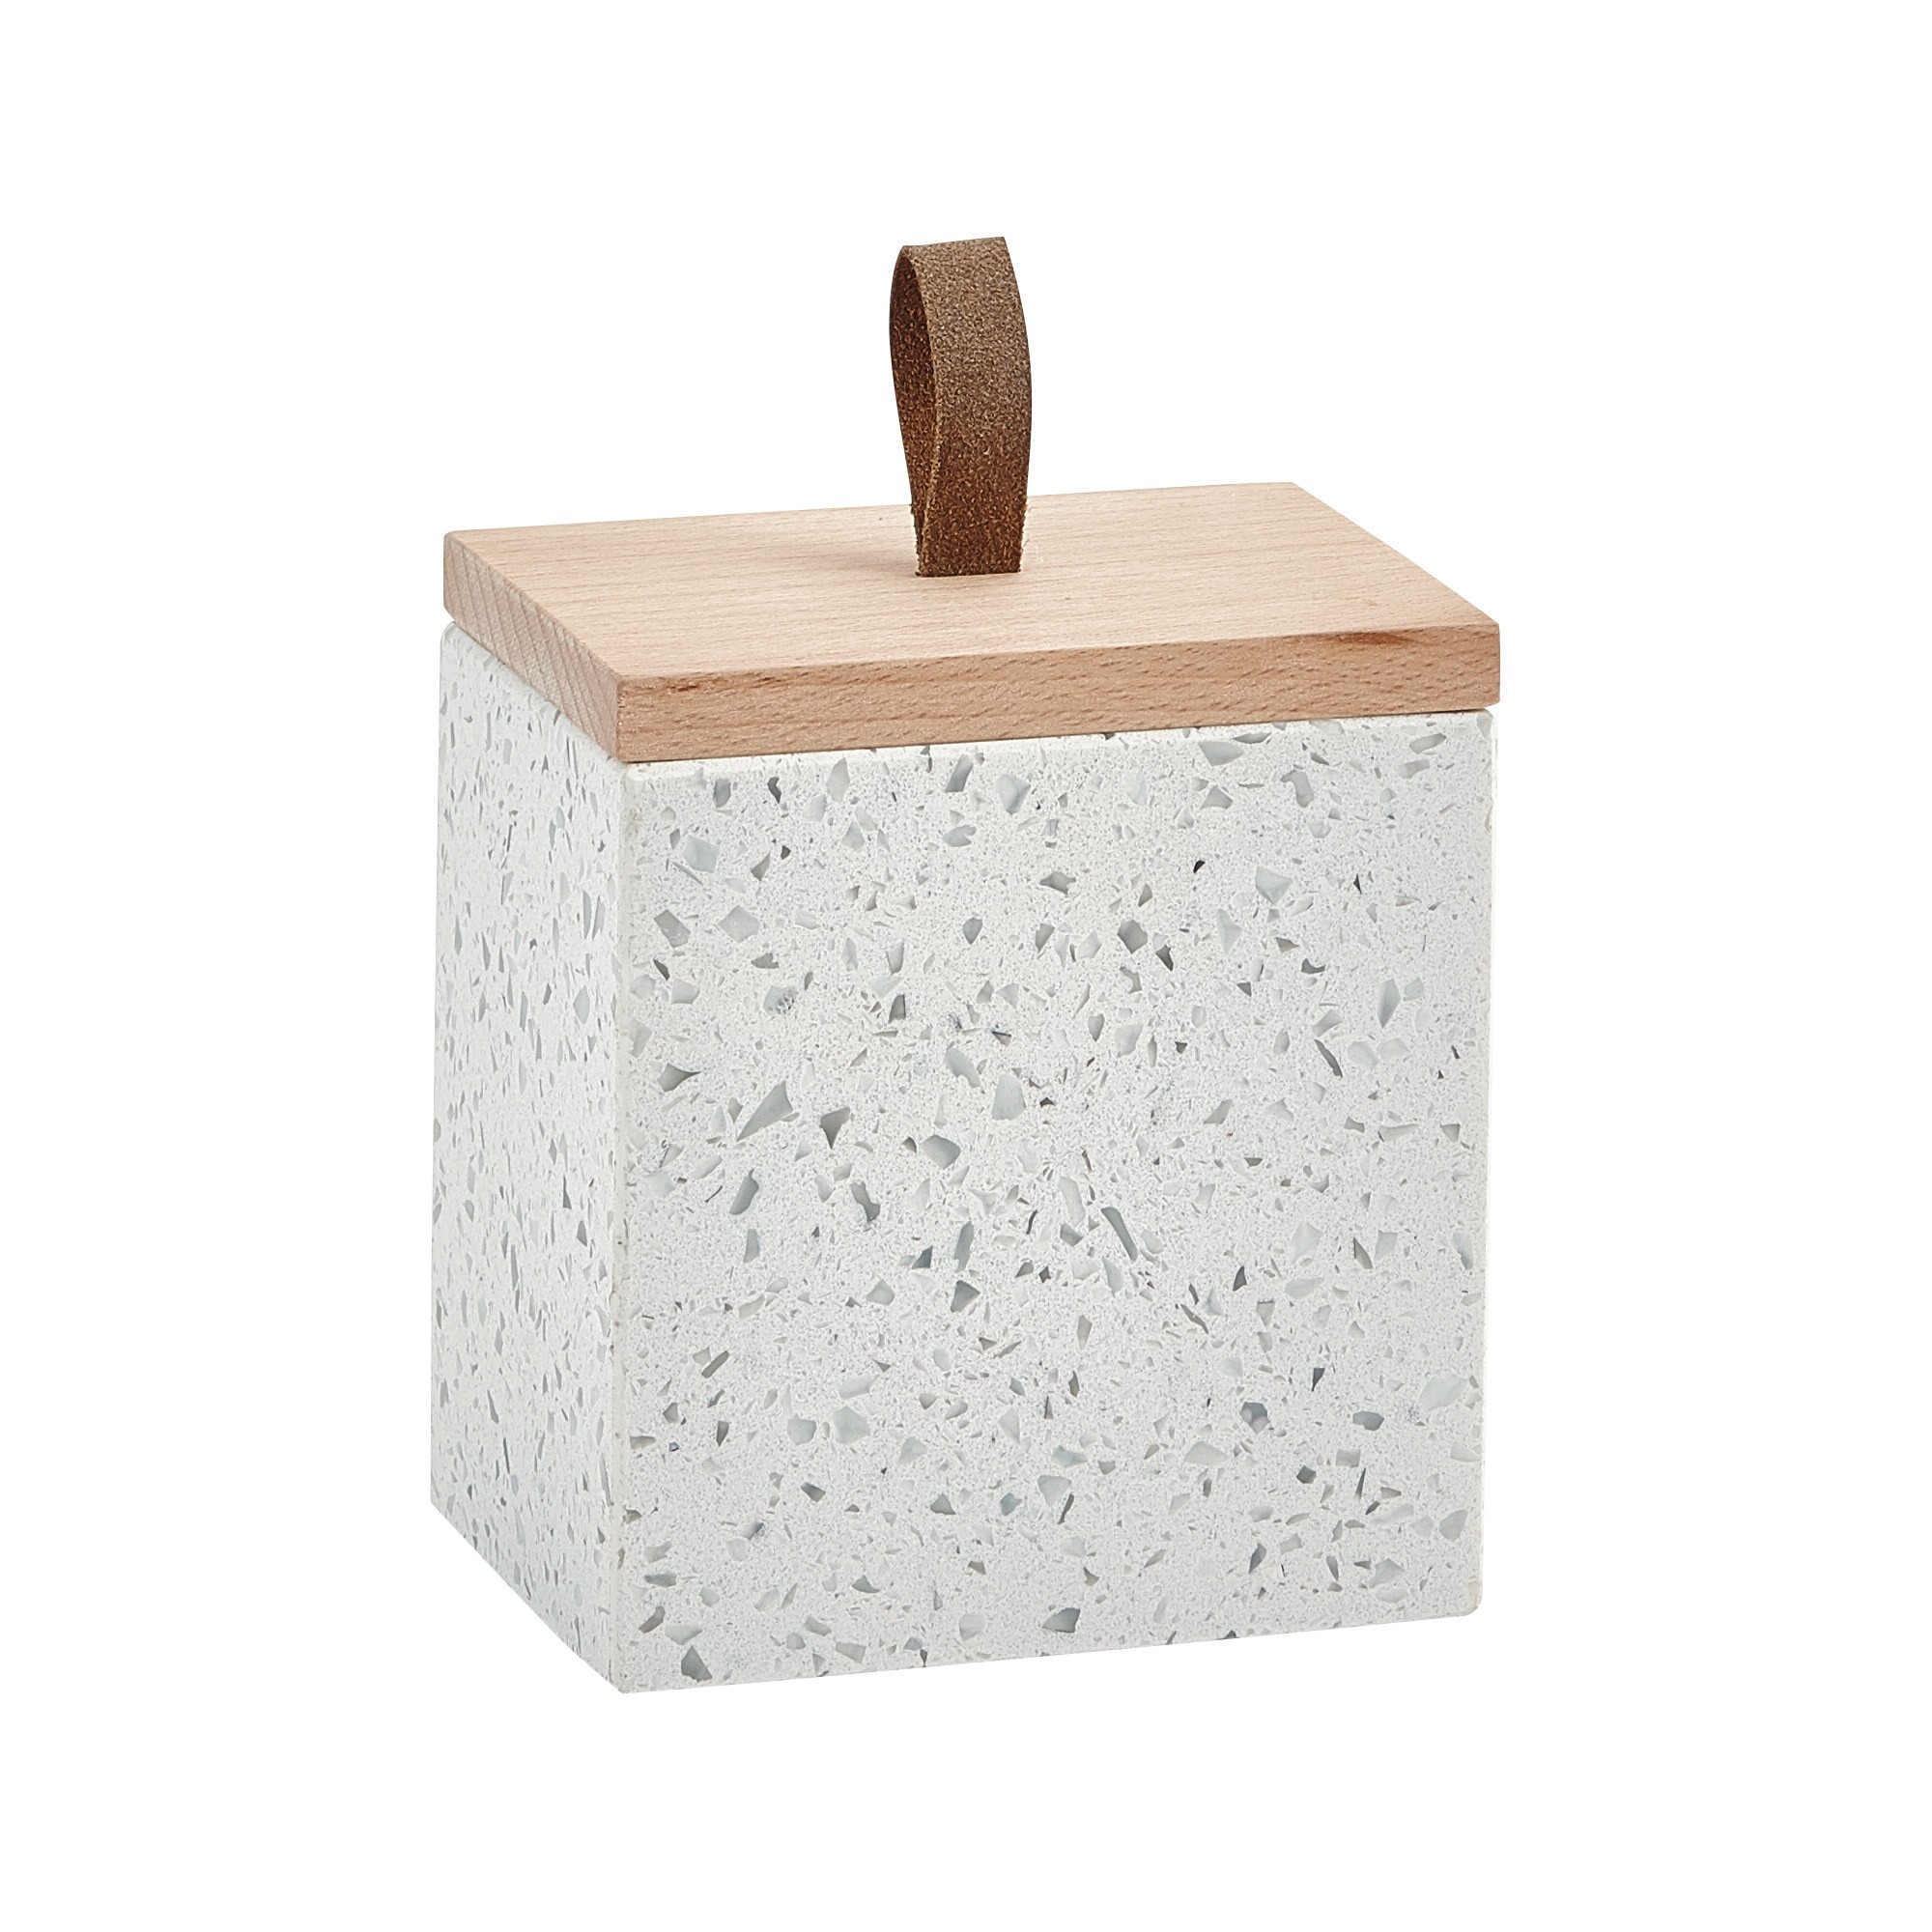 Aquanova Quartz Terrazzo Beauty Box, White